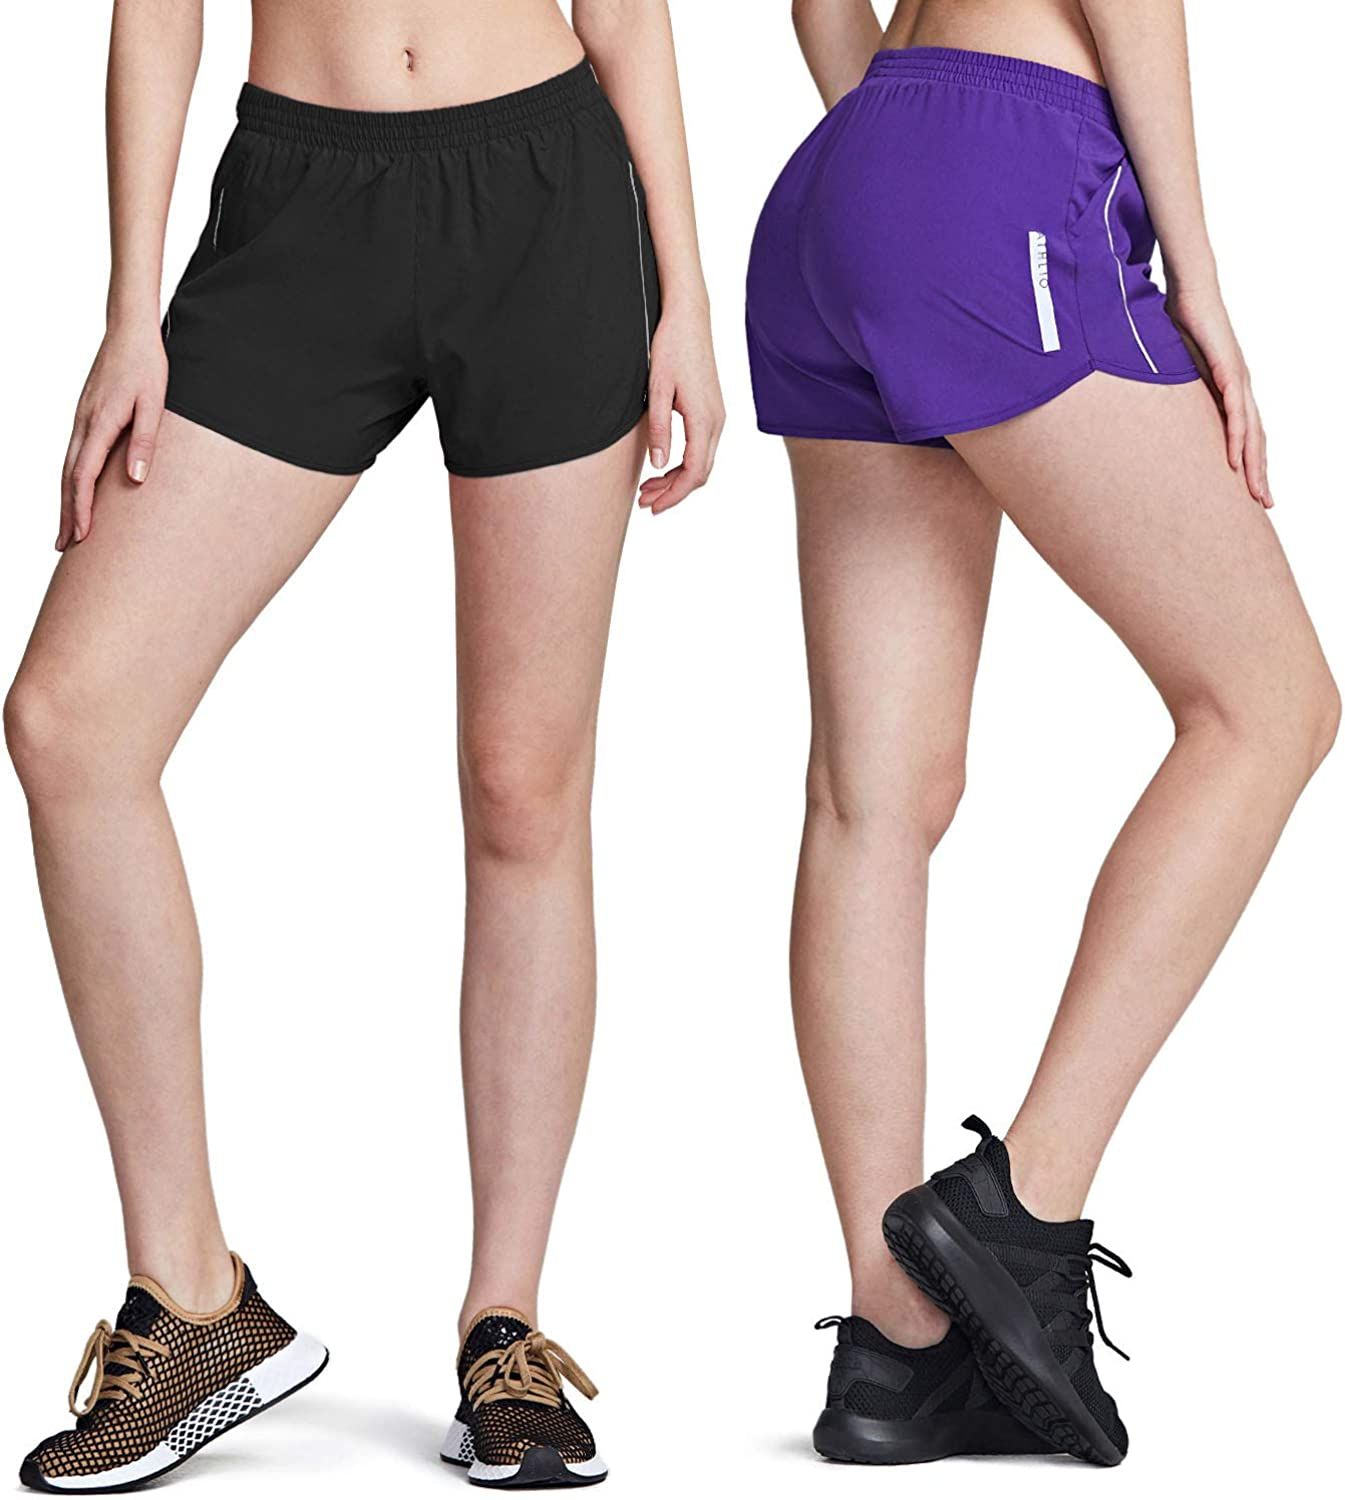 ATHLIO 2 Pack Womens Running Shorts with Pockets Jogging Sports Athletic Shorts Mesh Liner Dry Fit Exercise Workout Shorts